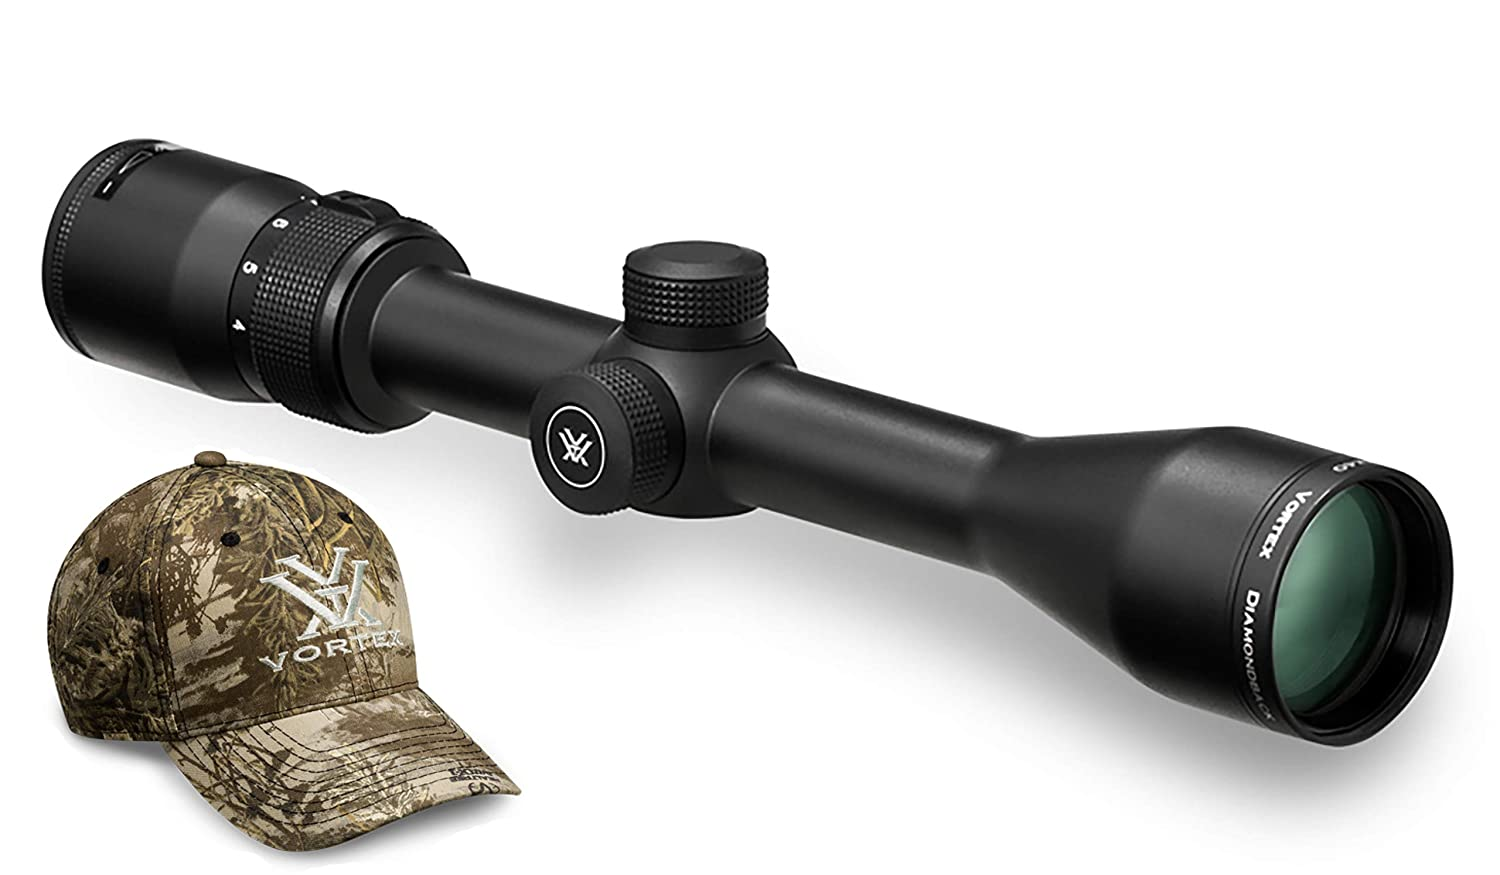 1. DIAMONDBACK® 4-12X40 RIFLESCOPE